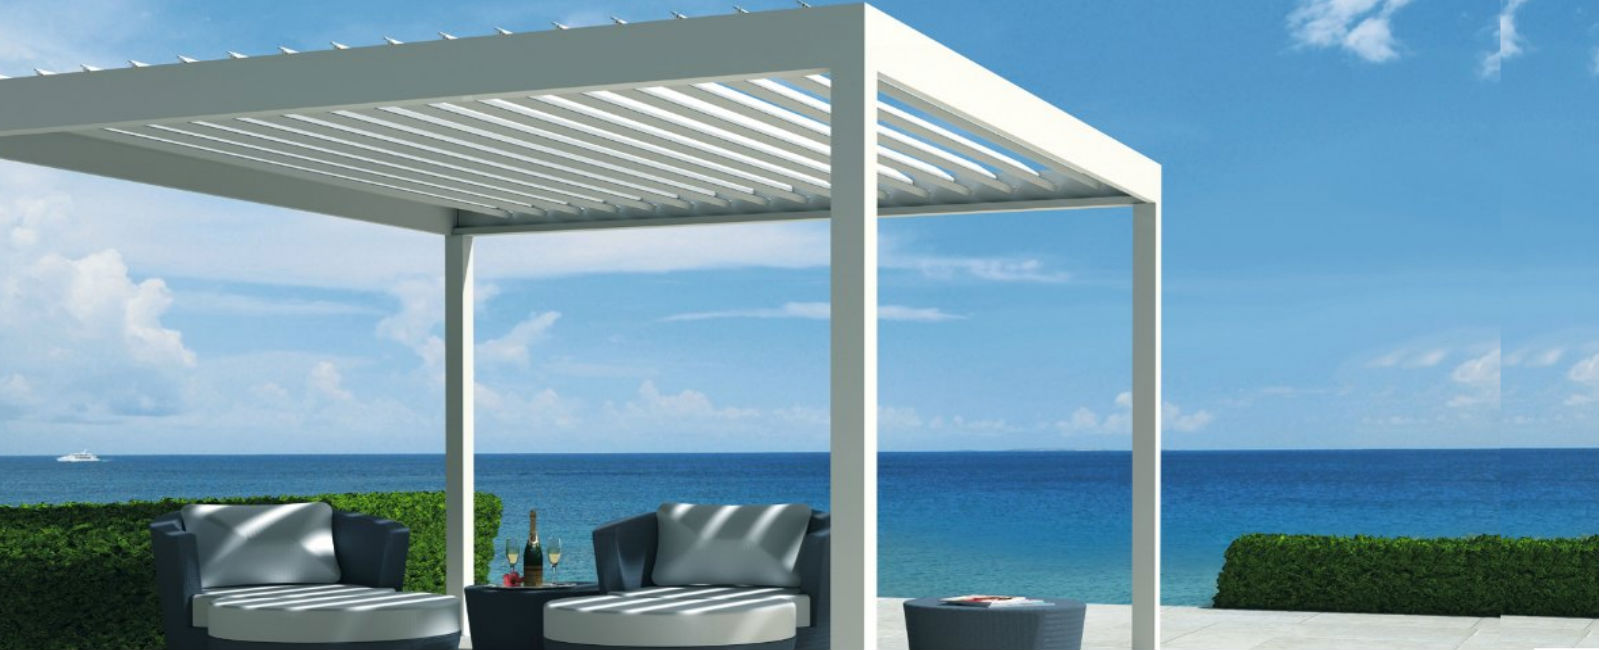 Retractable Roof Systems Uk Commercial Awnings Amp Giant